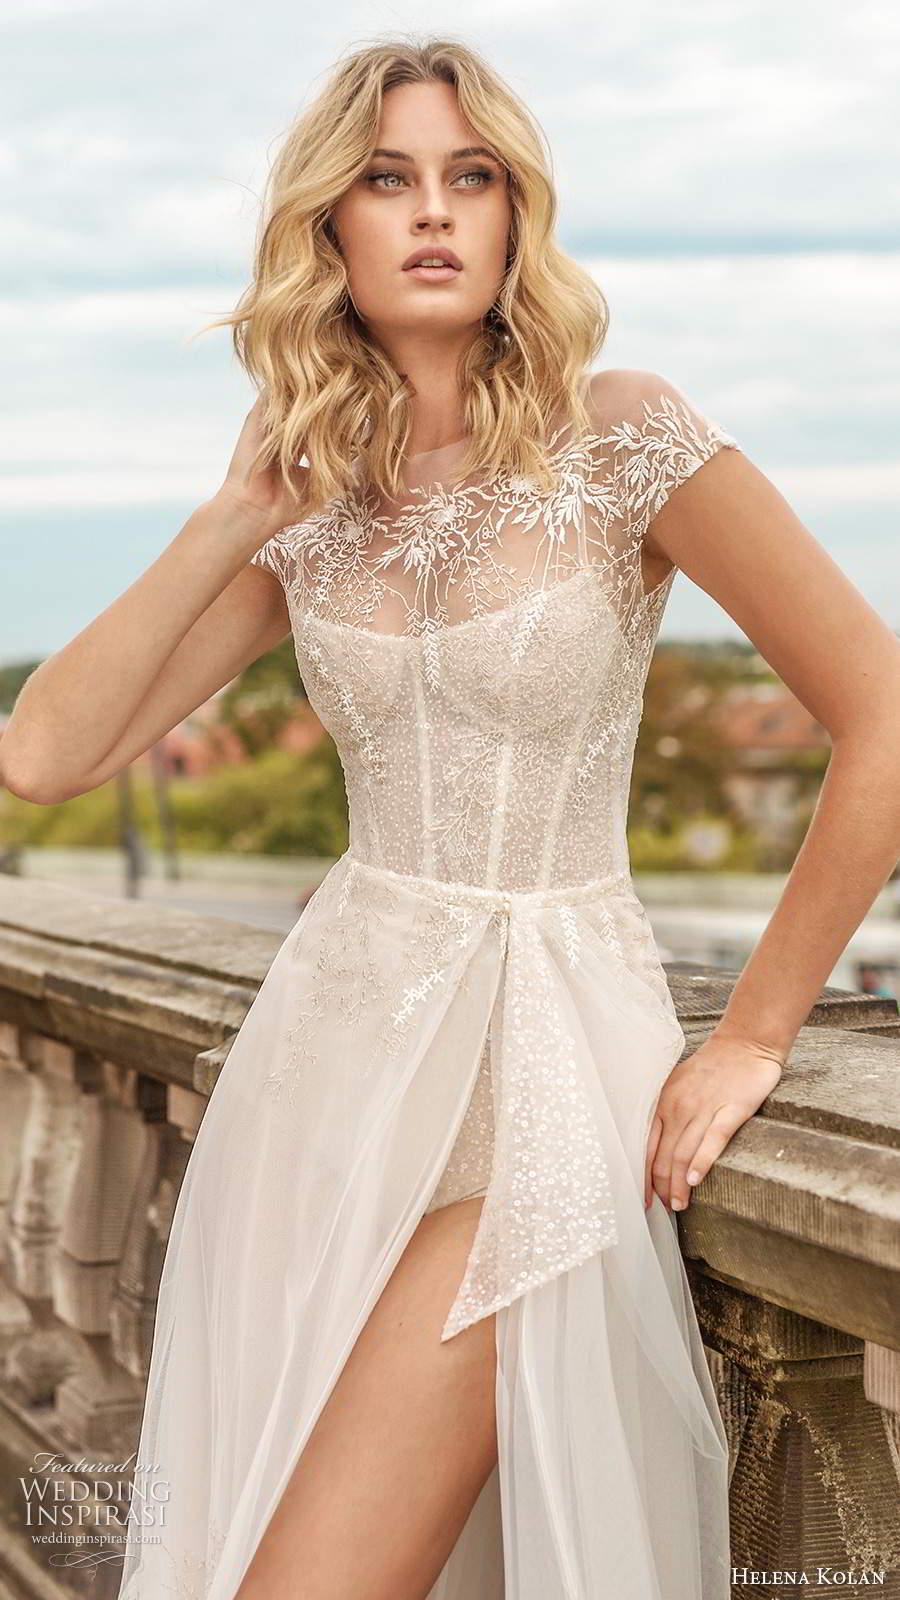 helena kolan 2020 bridal sheer cap sleeves sleeveless thin straps scoop neckline heavily embellished bodice slit skirt sexy a line wedding dress chapel train (2) zv